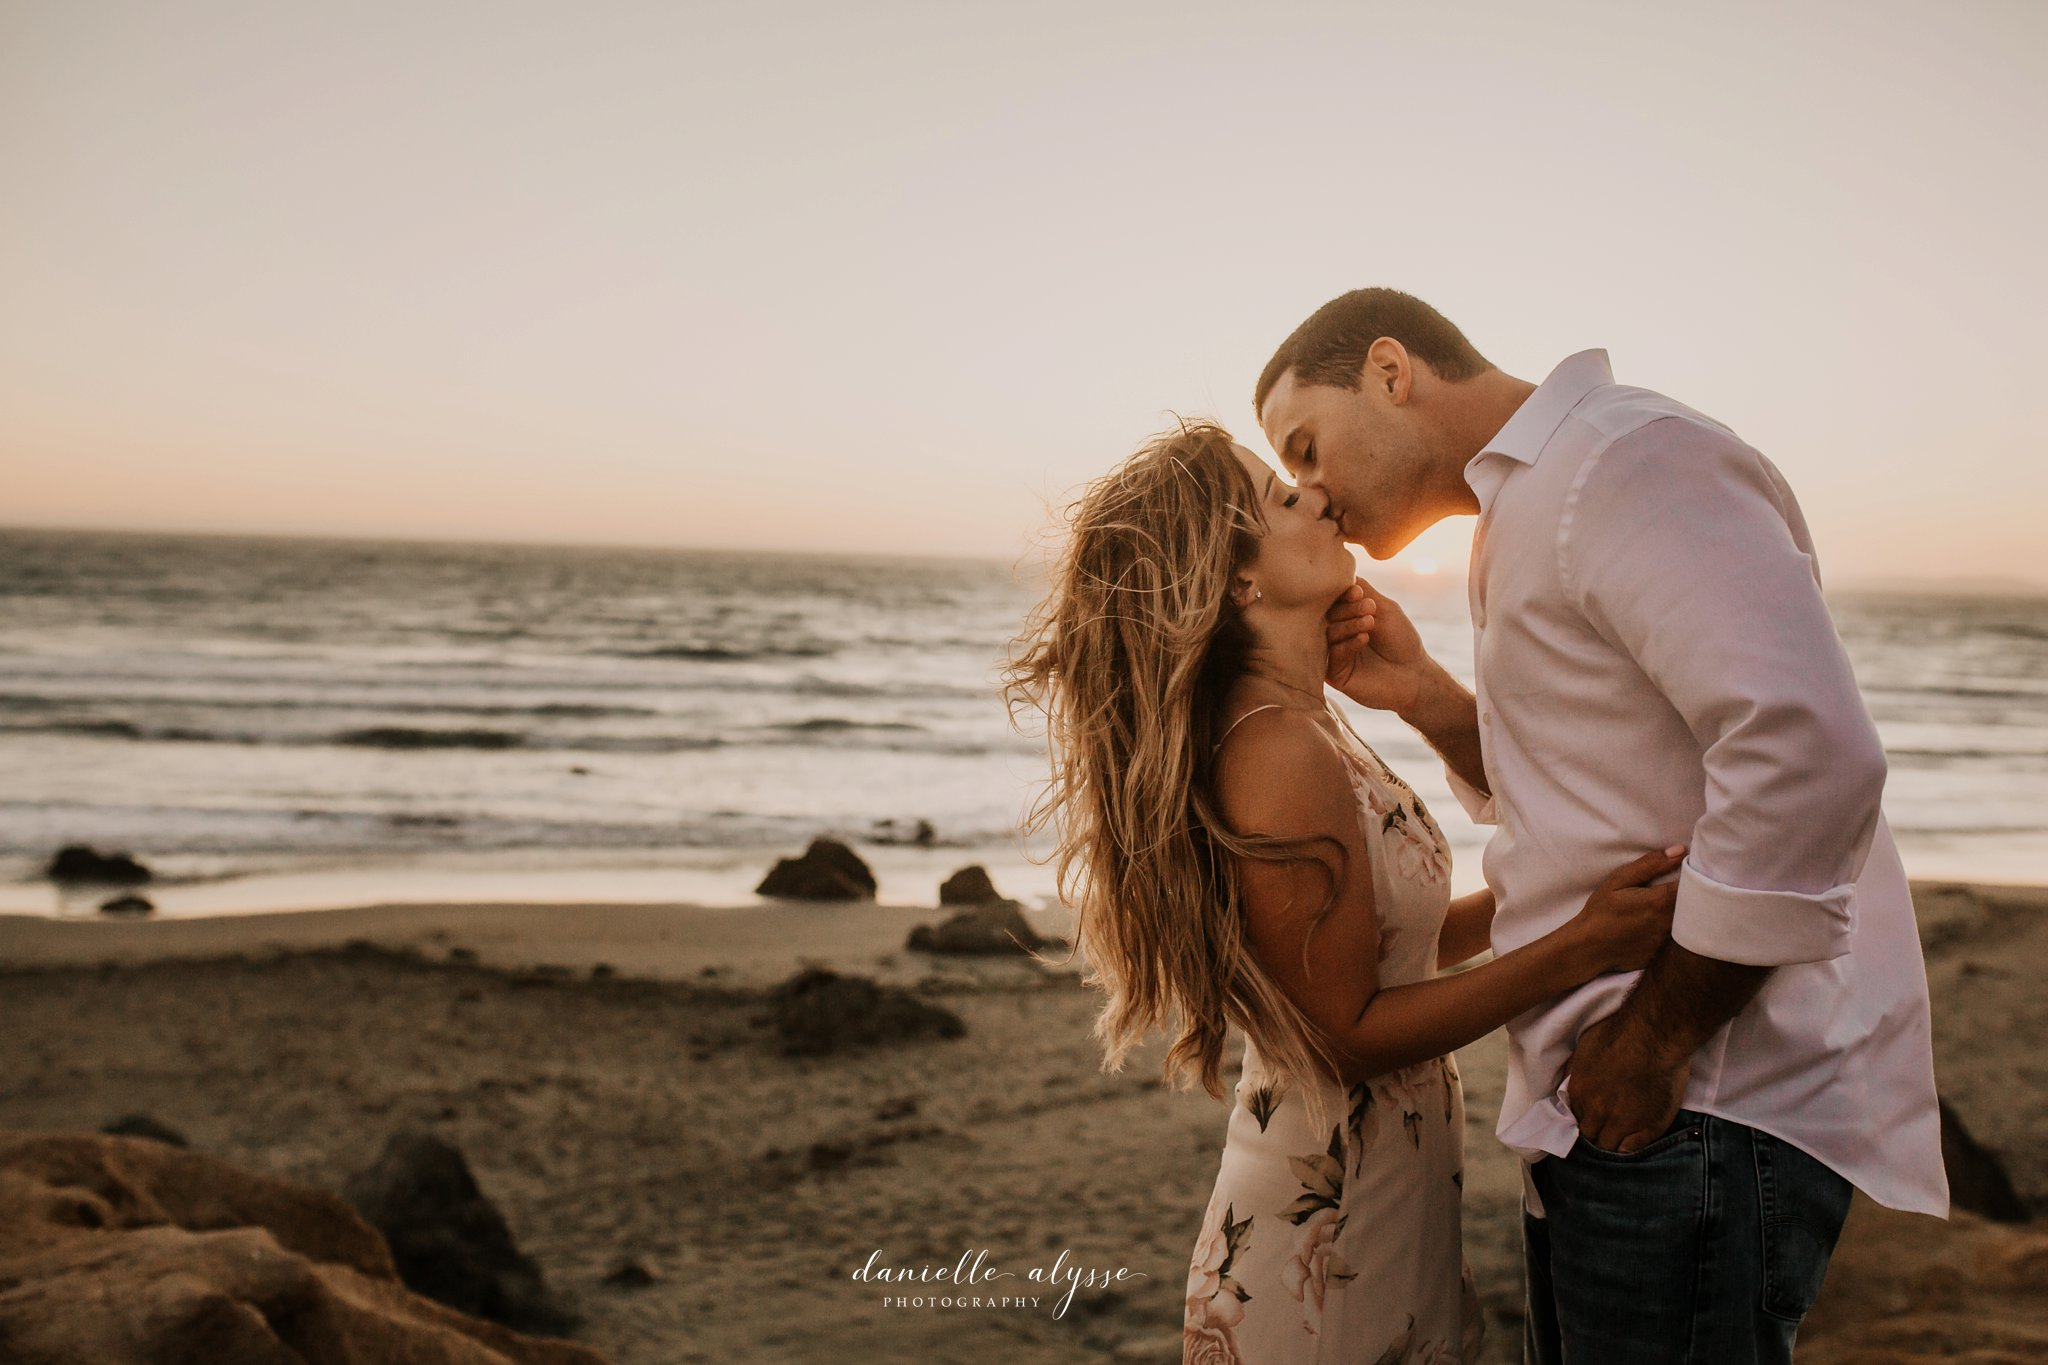 180804_engagement_katie_matt_dillon_beach_napa_danielle_alysse_photography_blog_84_WEB.jpg